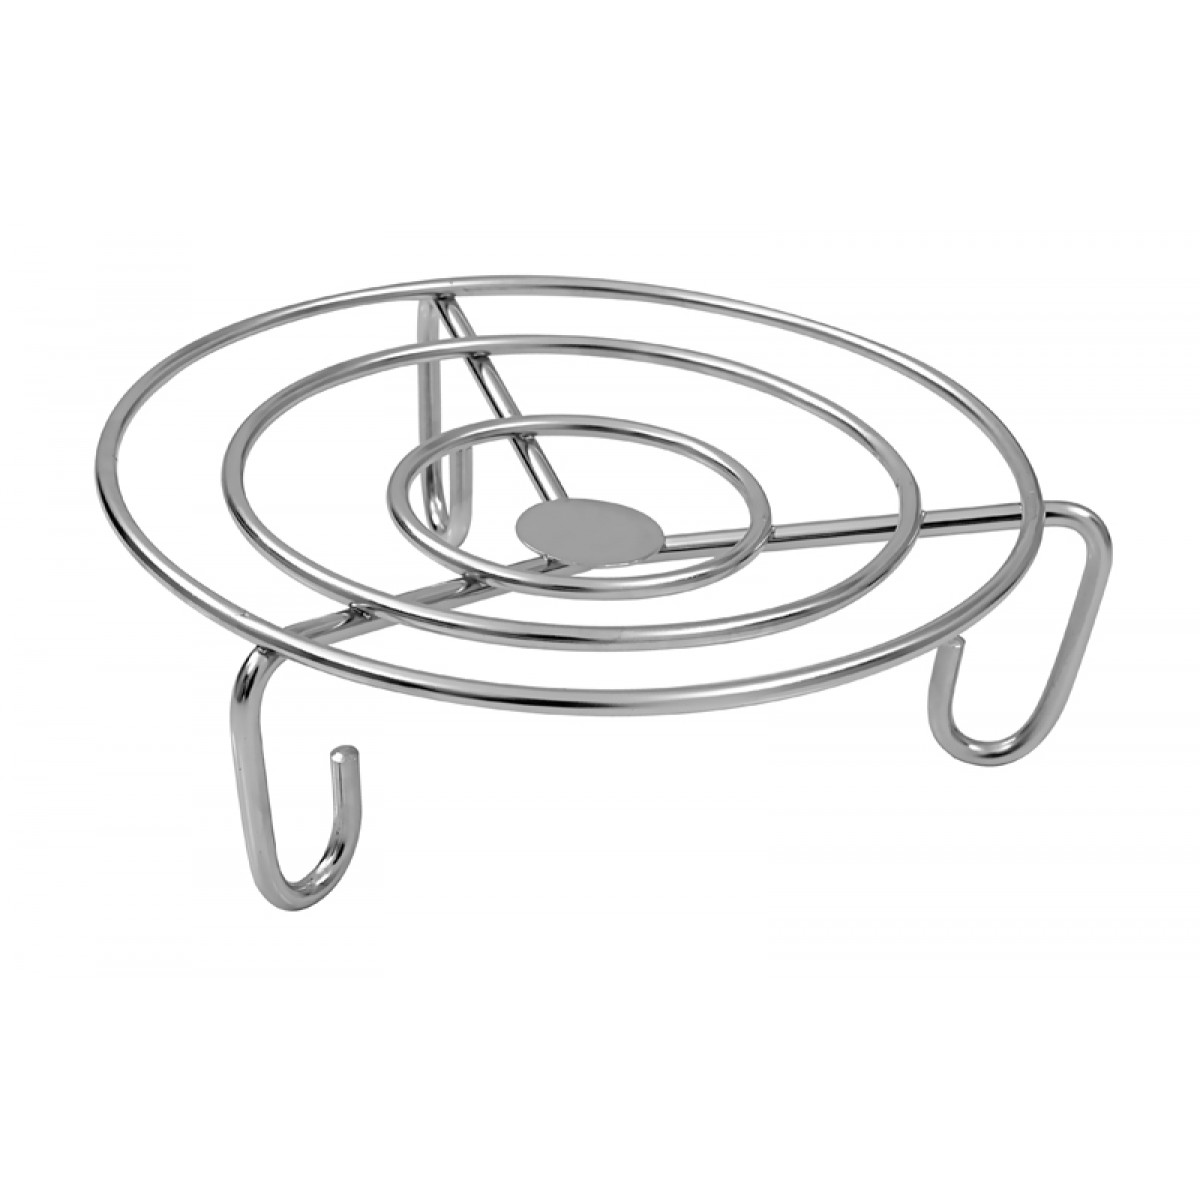 sc 1 st  Klaxon Hardware & Klaxon Round Hot Plate Stand for Kitchen - Stainless Steel